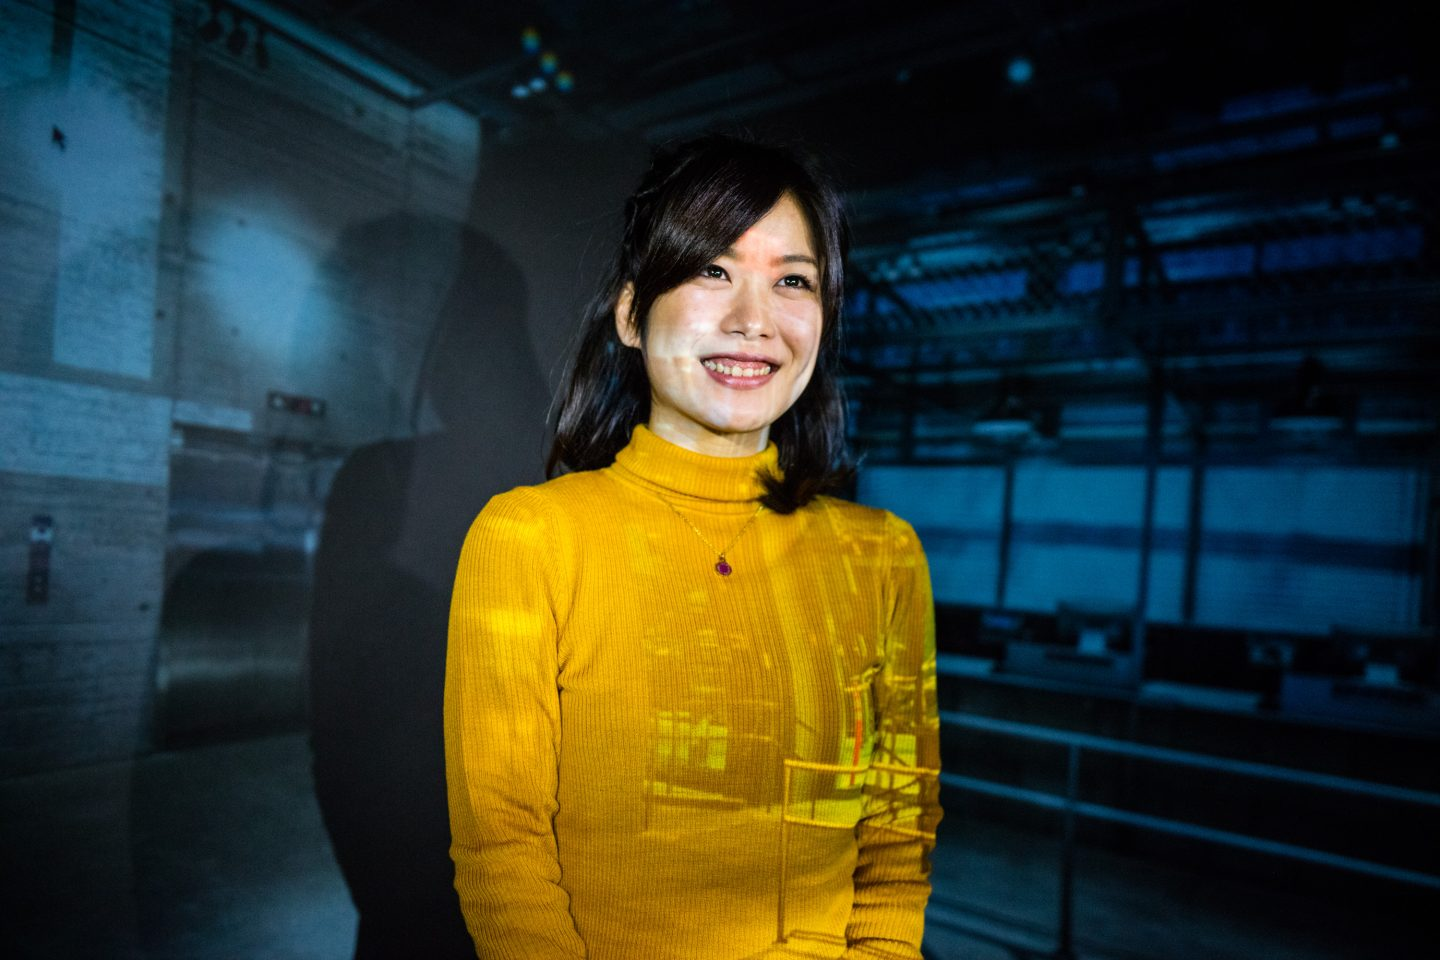 Woman smiling with a projection behind her